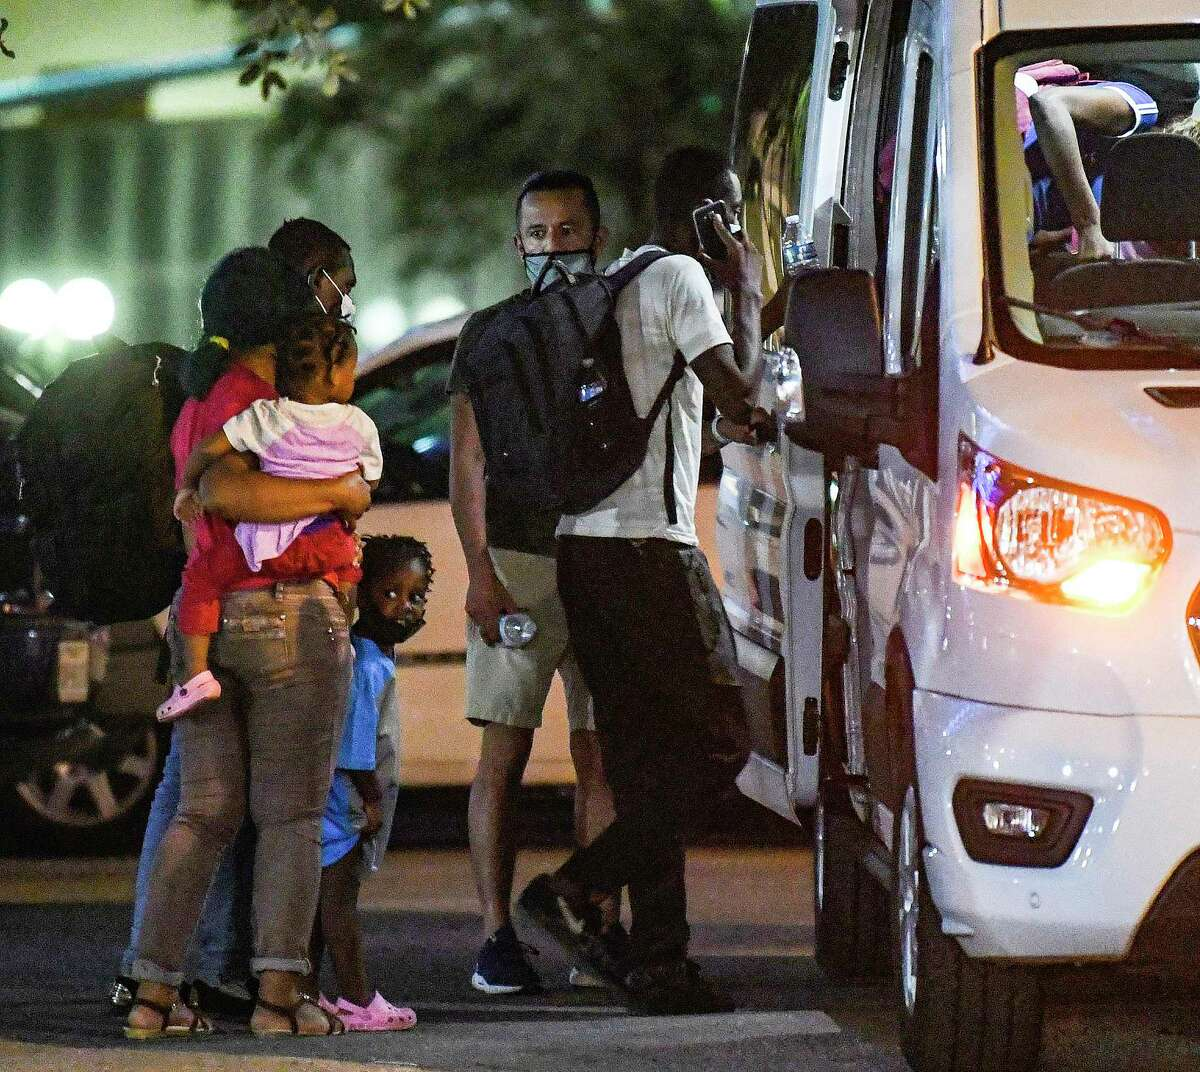 Readers say Haitian migrants, seen here at the downtown San Antonio bus station Monday, should have their pleas for asylum heard.